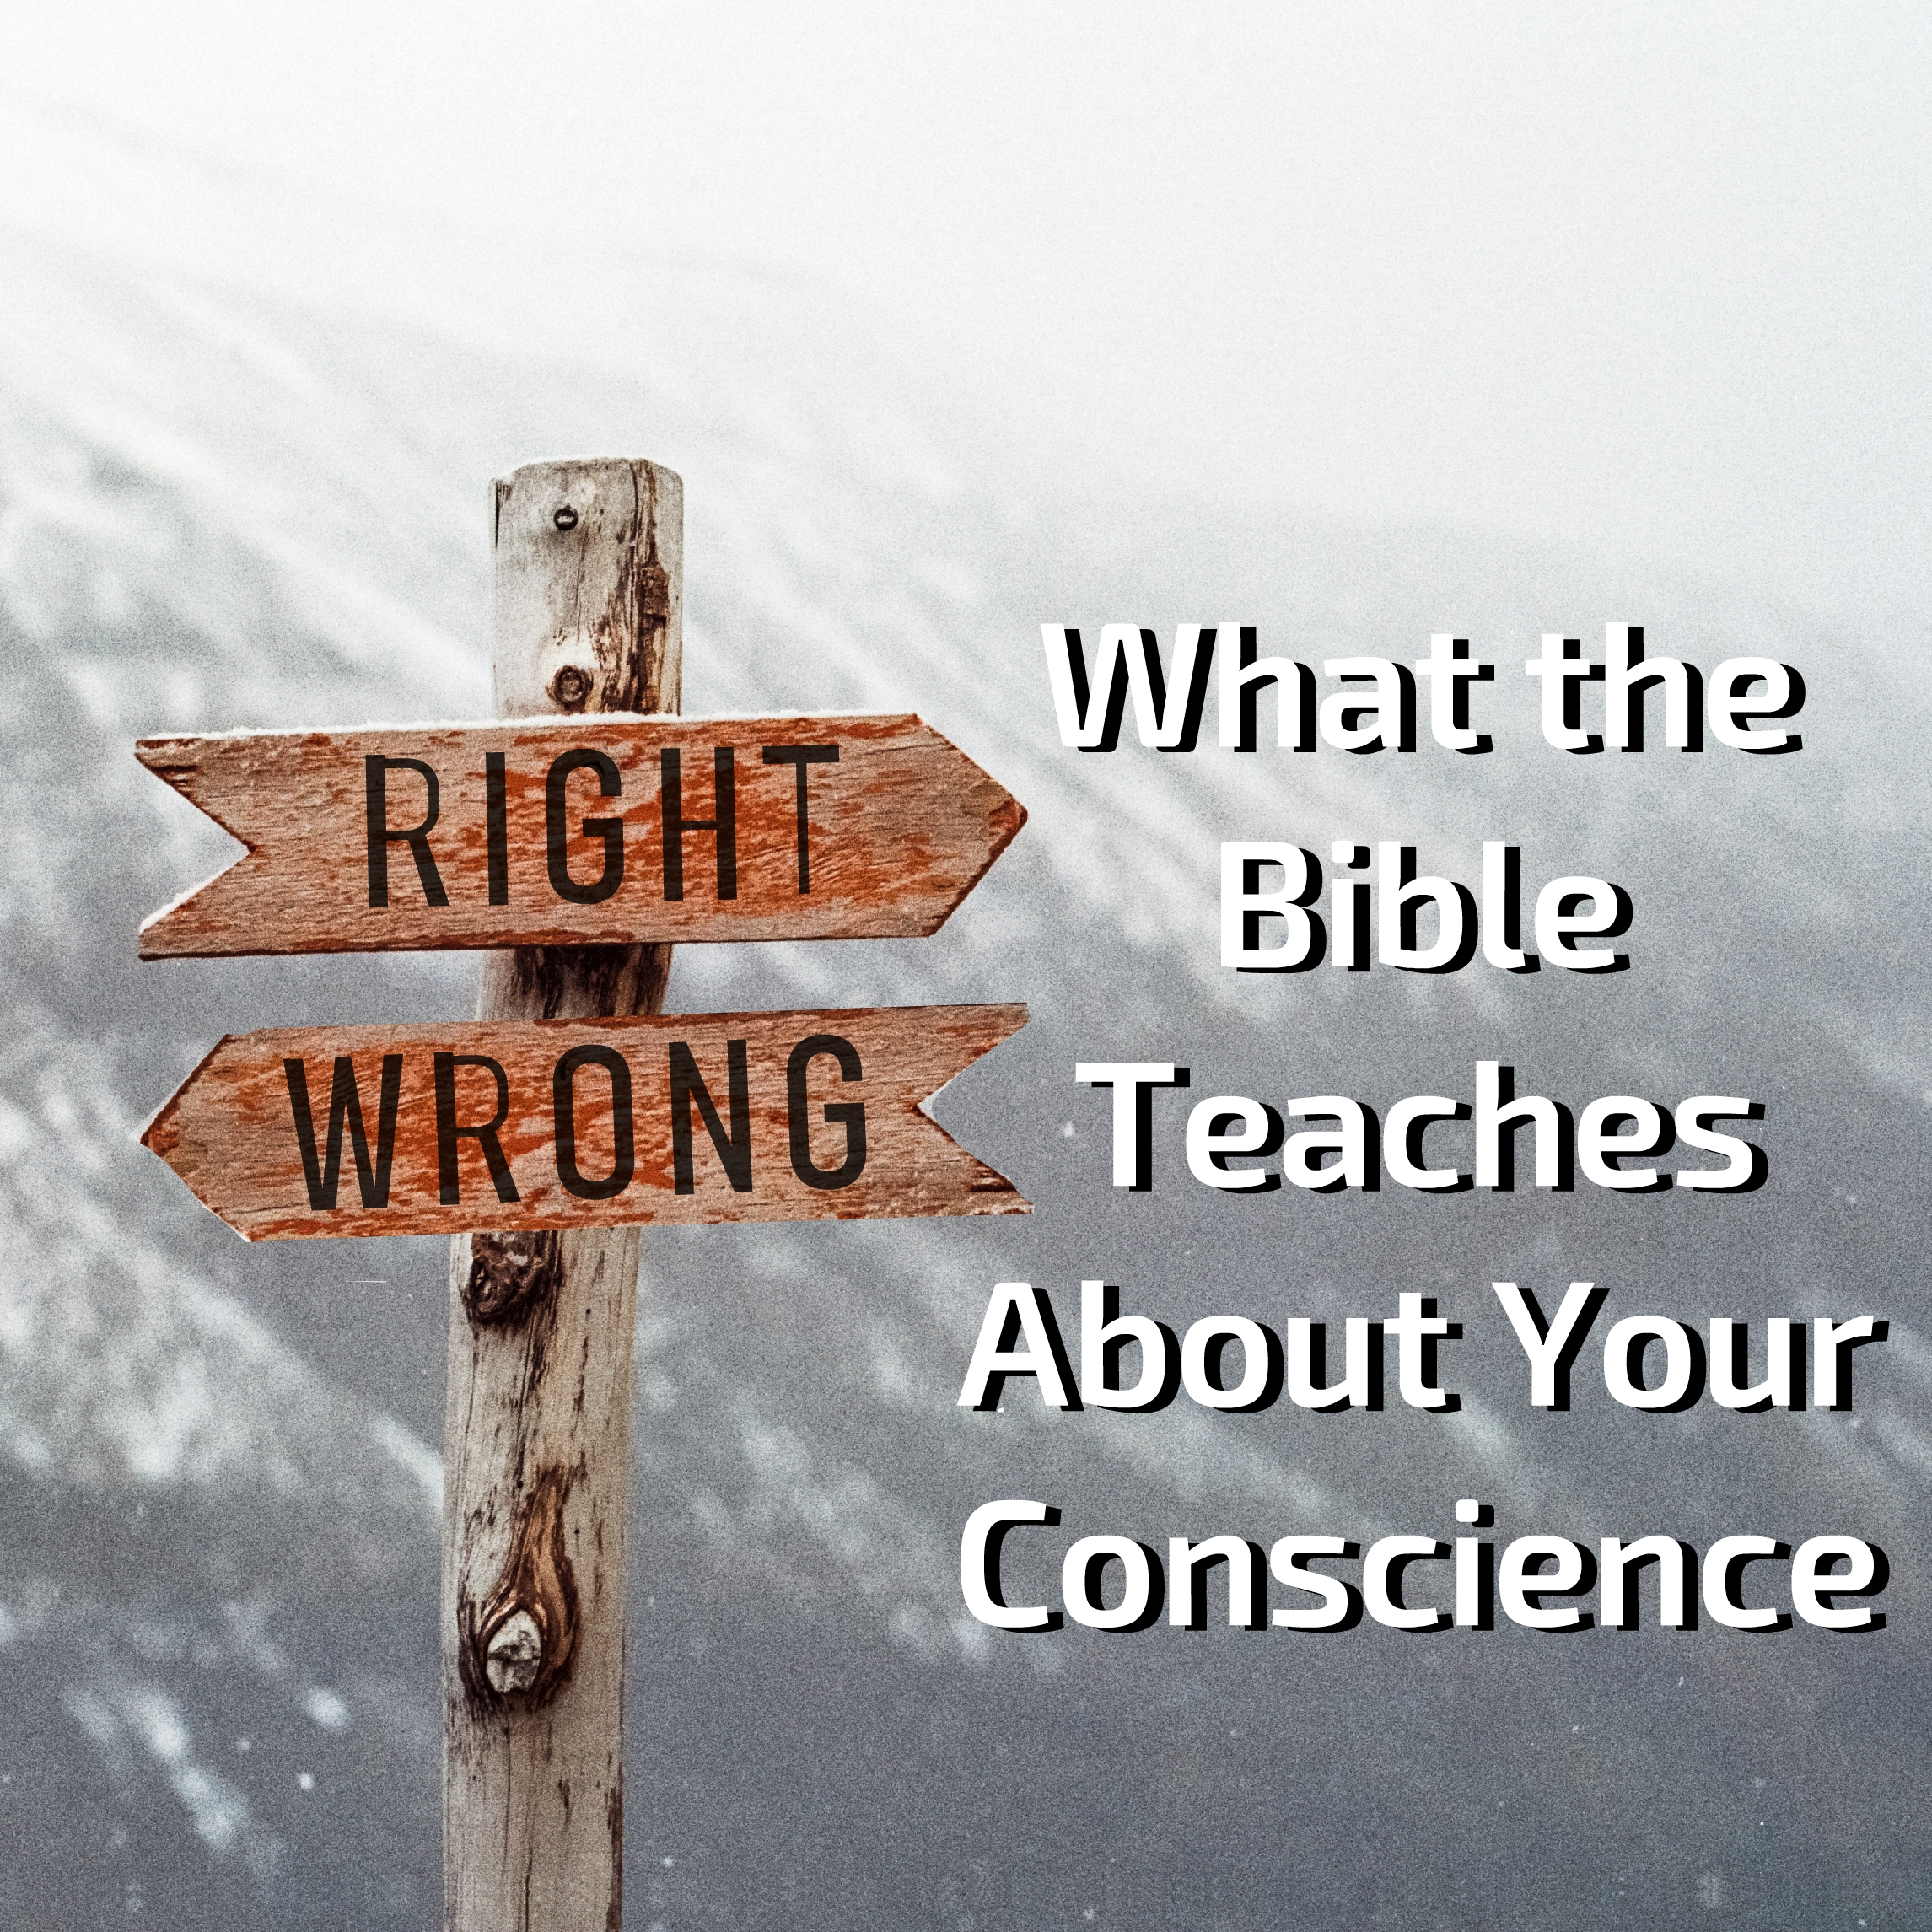 Right and Wrong: What the Bible Teaches About Your Conscience